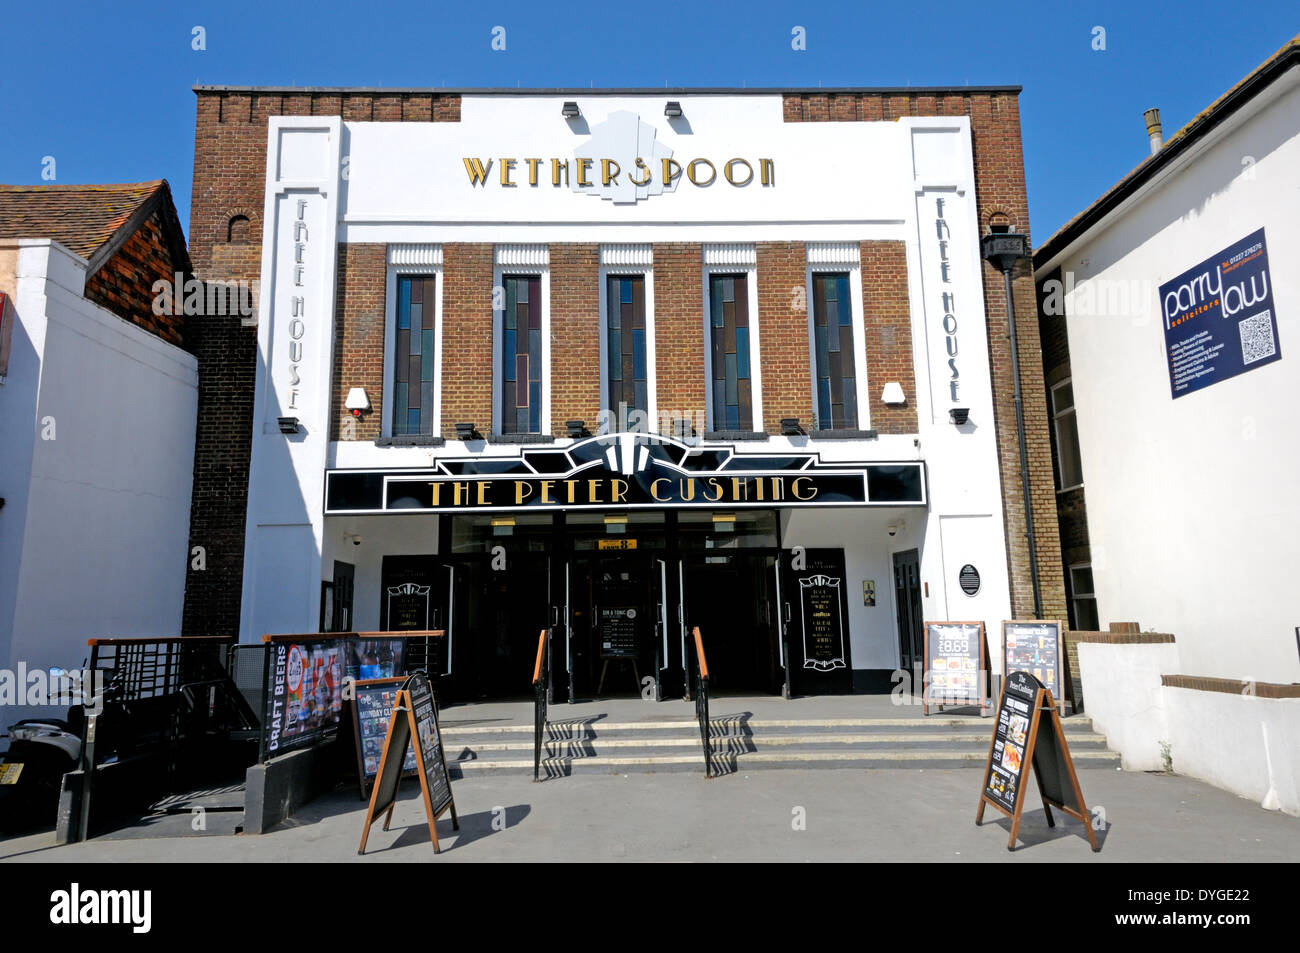 Whitstable, Kent, England, UK. Wetherspoons pub 'The Peter Cushing' in the former Oxford Cinema (Art Deco- 1935) - Stock Image